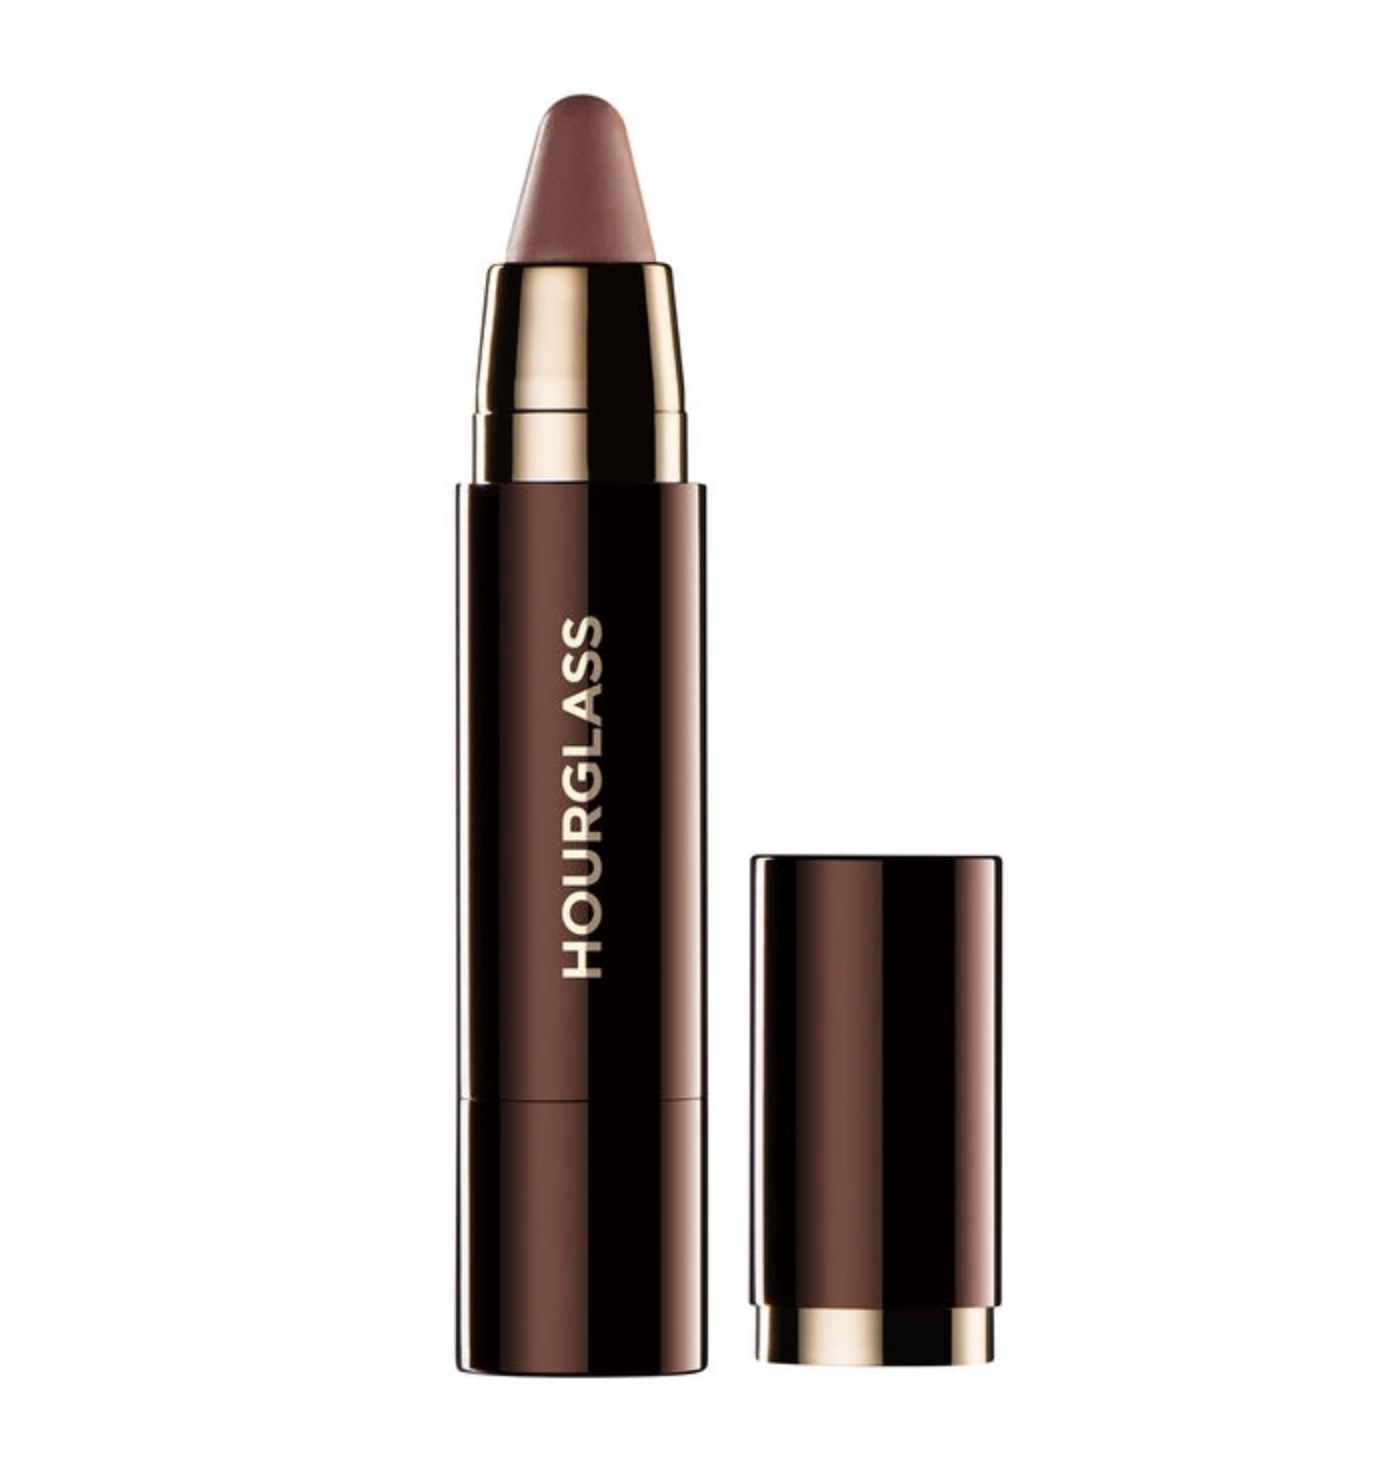 HOURGLASS Femme Nude Lip Stylo in no.5